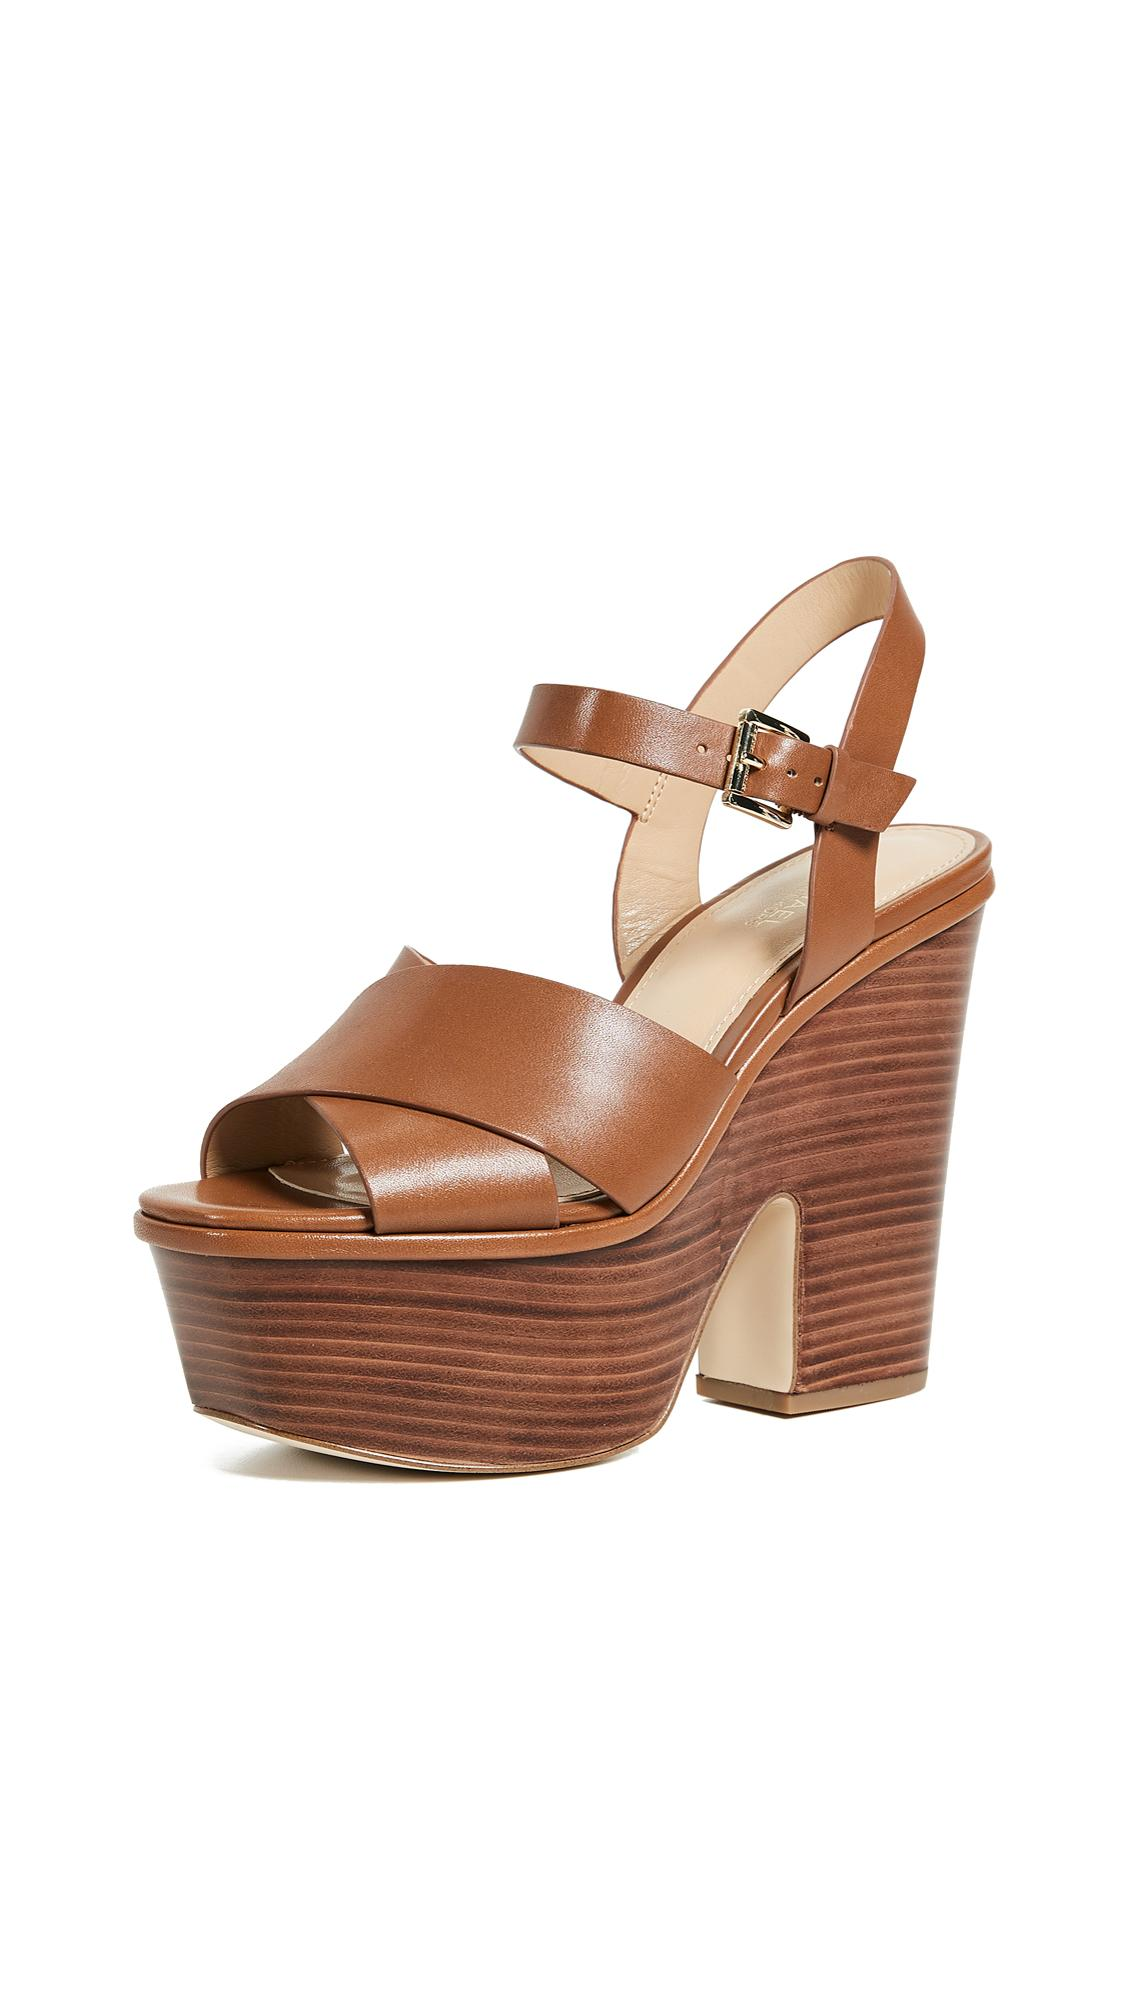 7f013cf8fc51 Michael Michael Kors Divia Demi Wedge Sandal In Luggage